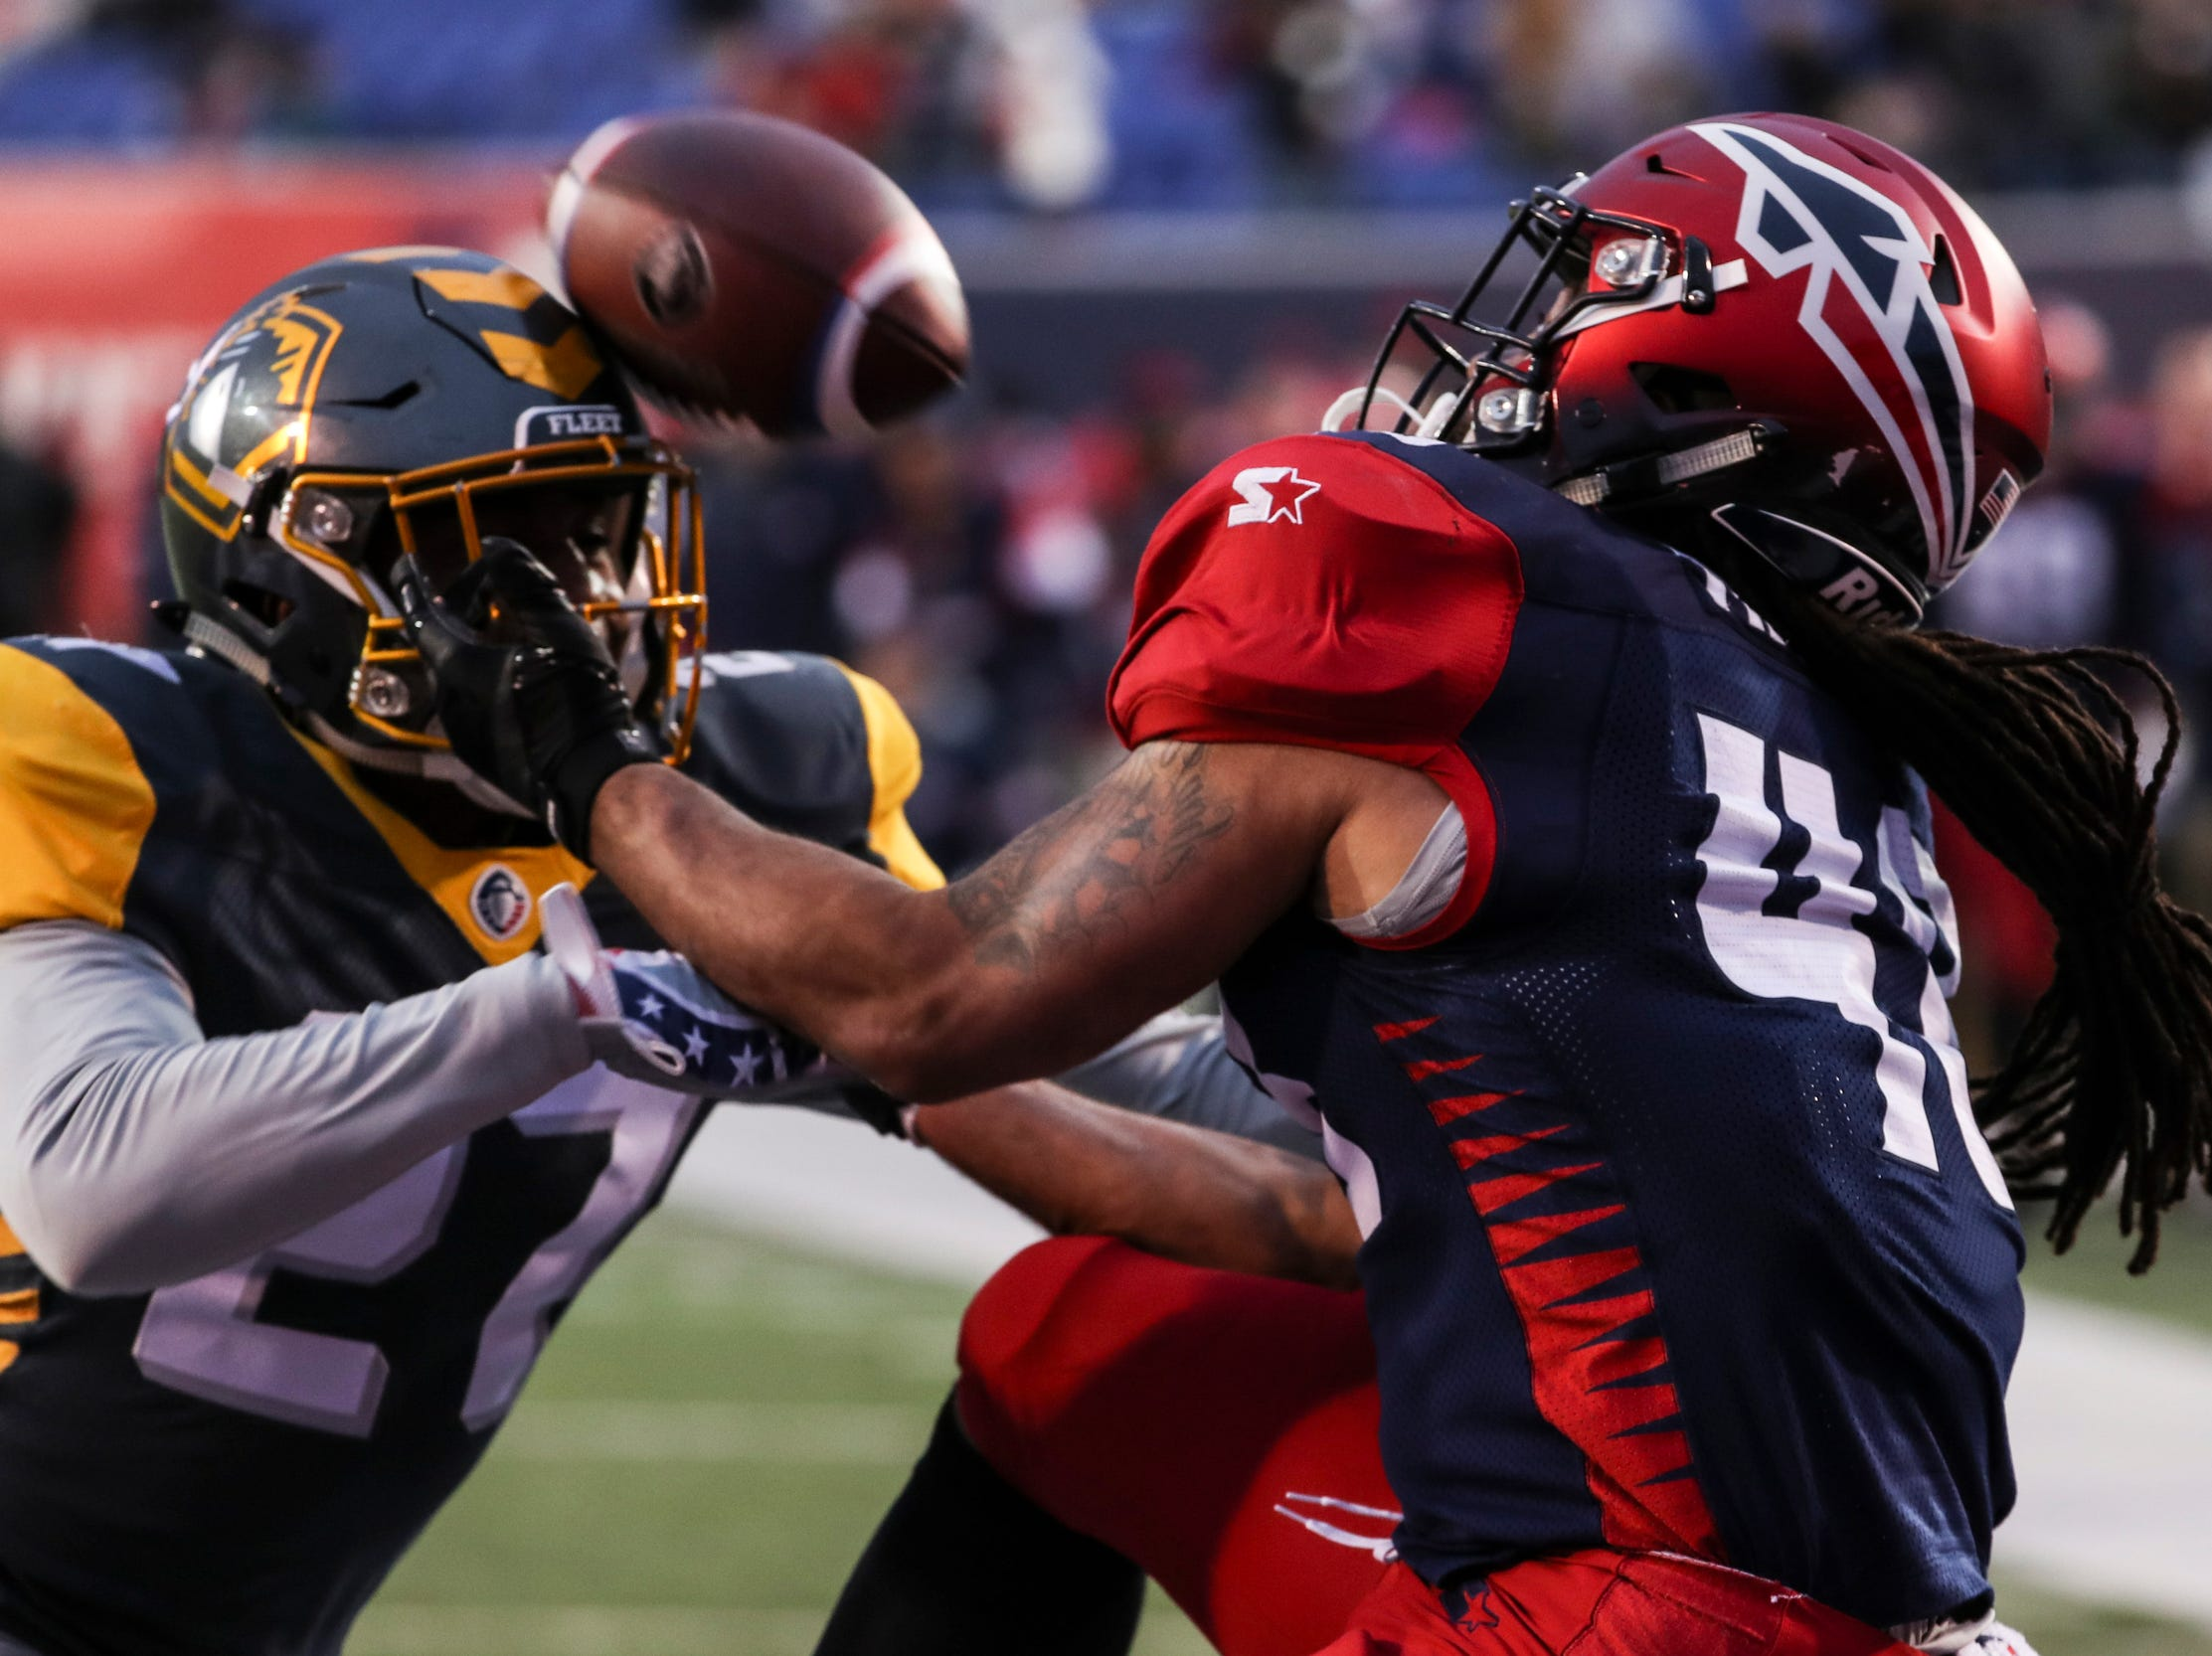 March 02, 2019 - Terrence Magee catches a touchdown pass during Saturday's game against the San Diego Fleet.